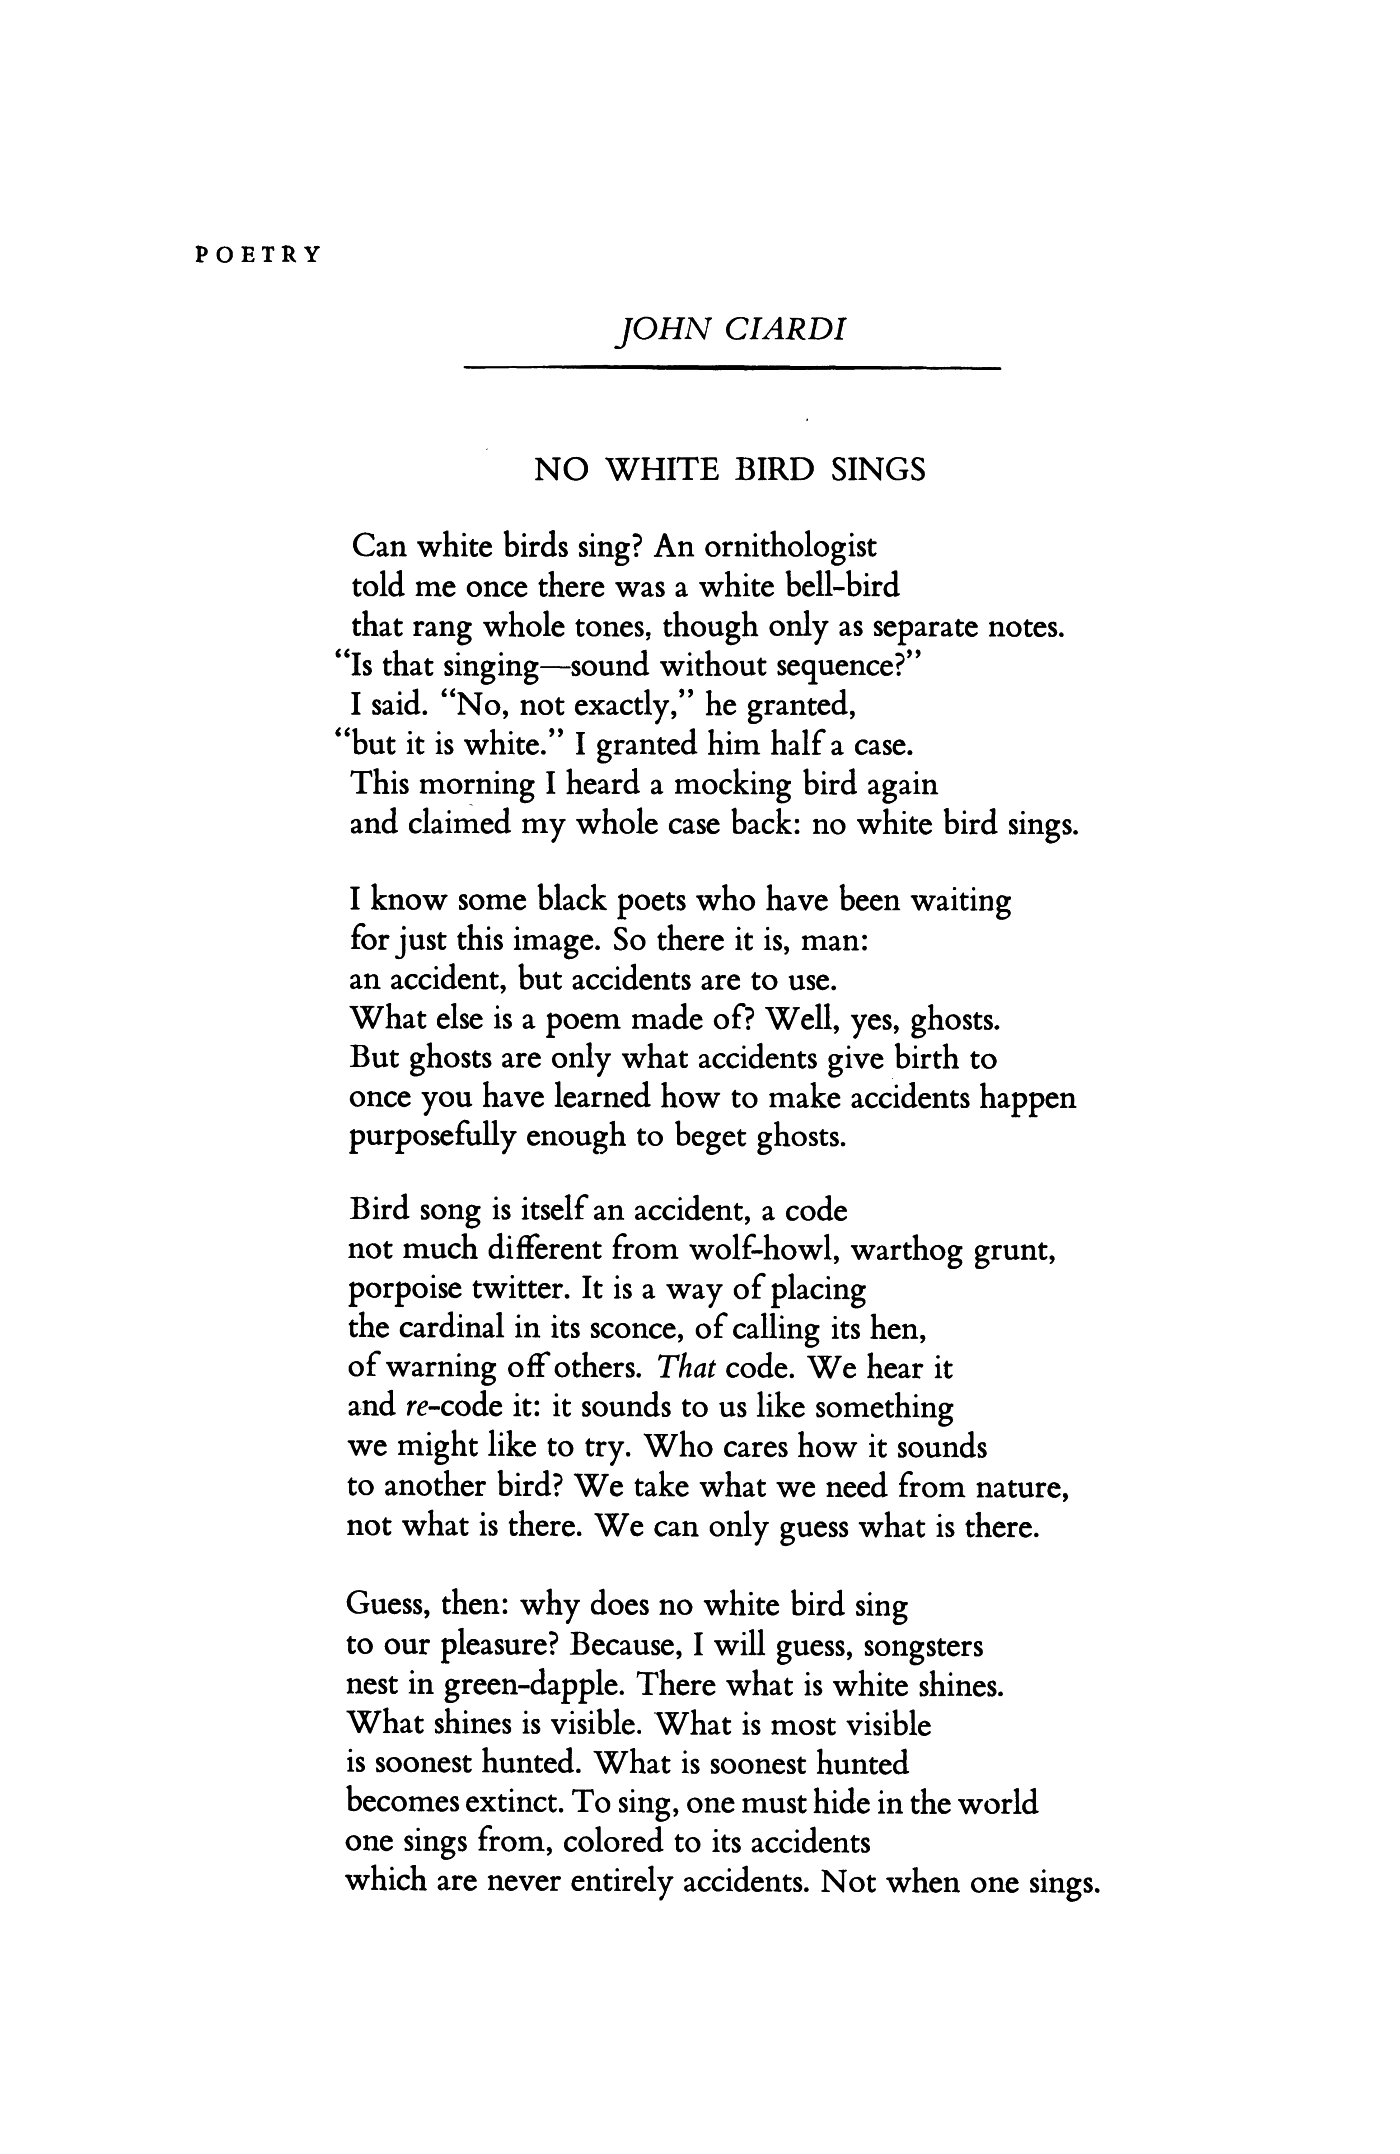 No White Bird Sings by John Ciardi | Poetry Magazine